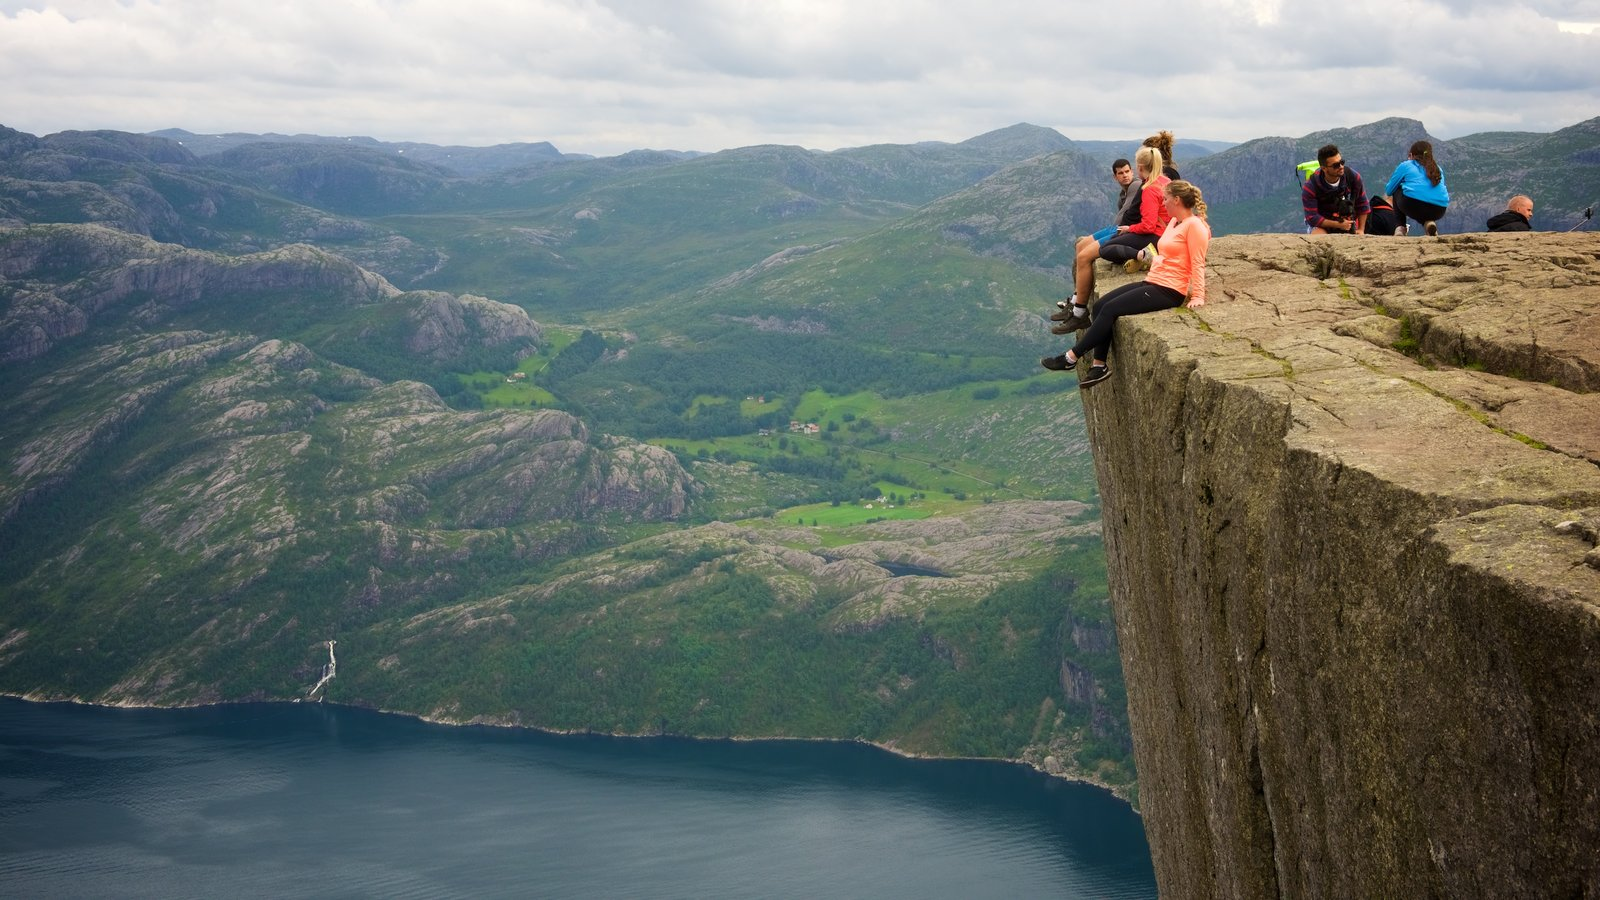 Preikestolen which includes views and a lake or waterhole as well as a small group of people